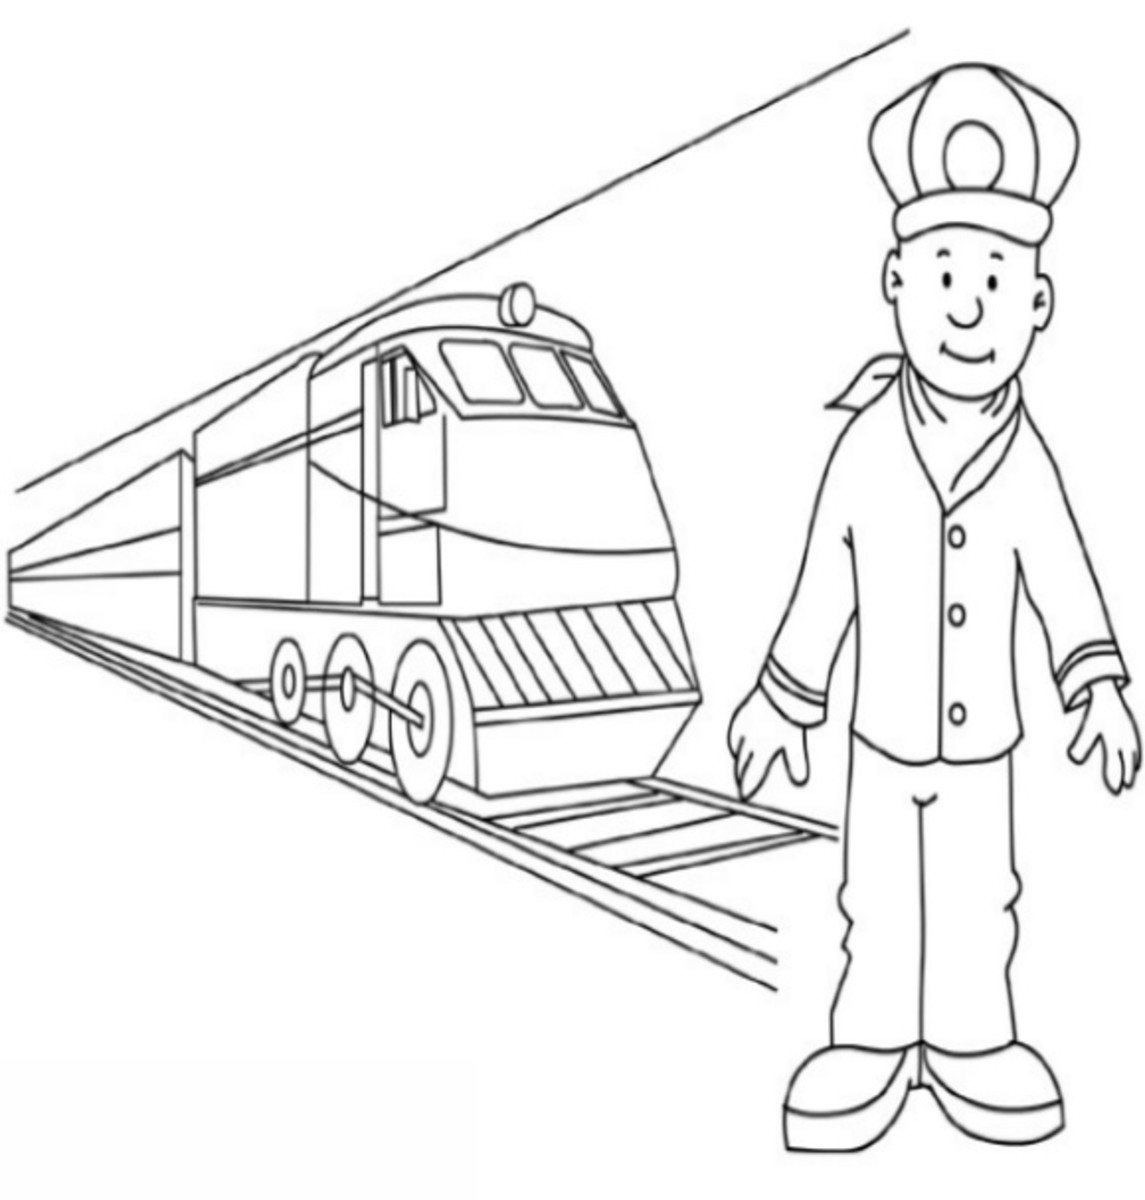 Free Educational Coloring Pages for use with home schooling or traditional school education on sports and other outdoor occupations